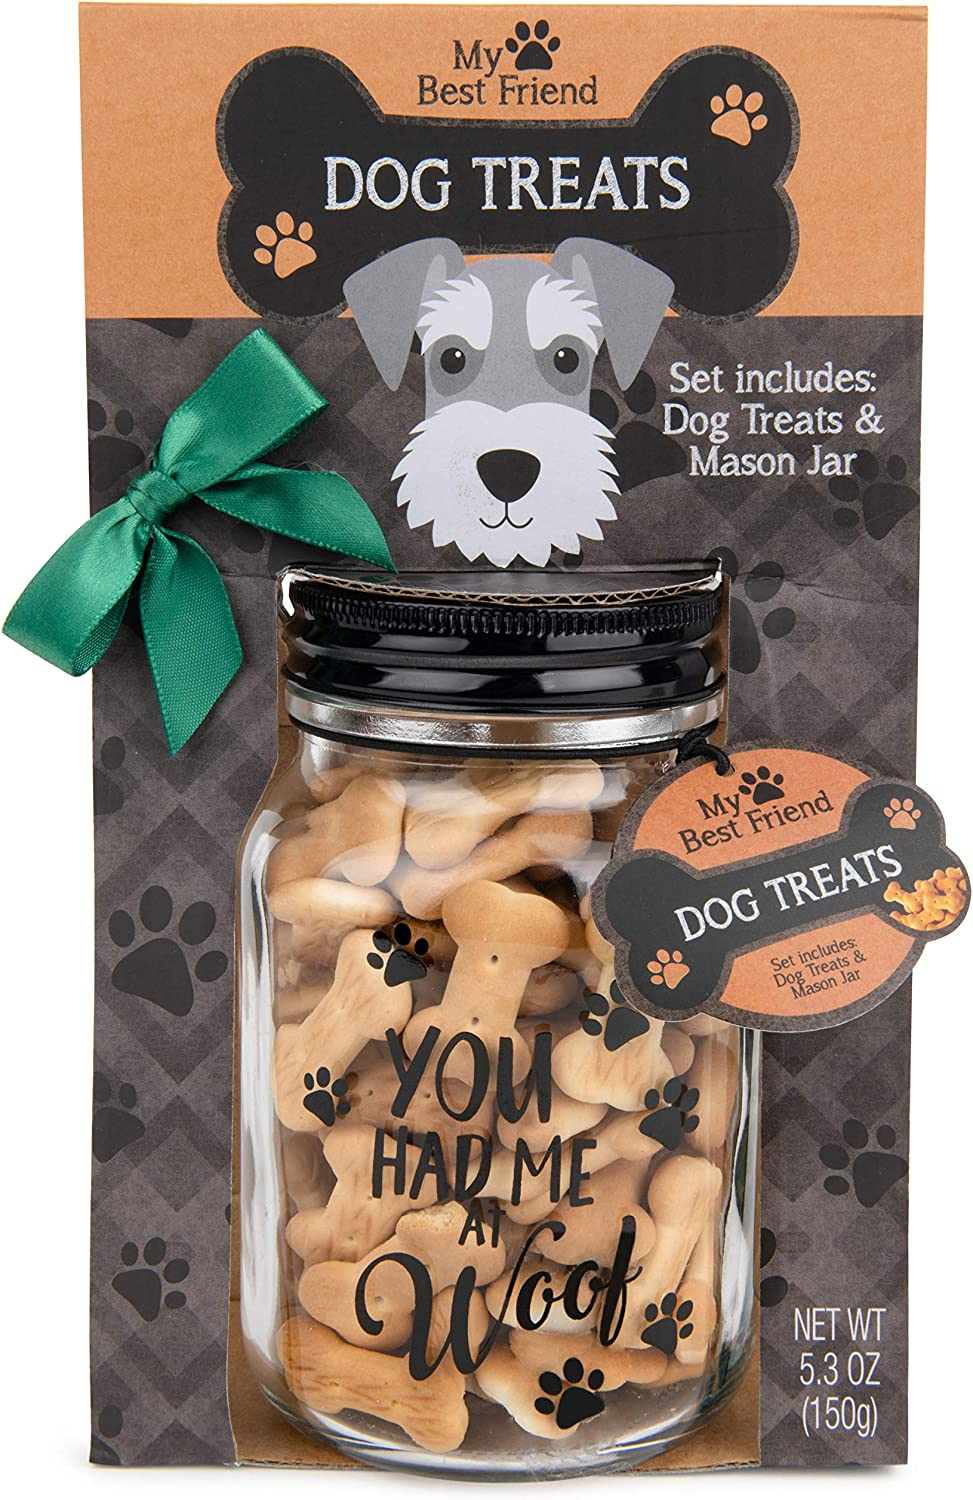 Thoughtfully Gifts Dog Cookies Gift Max 67% OFF Hand Decorate Set Oakland Mall Includes